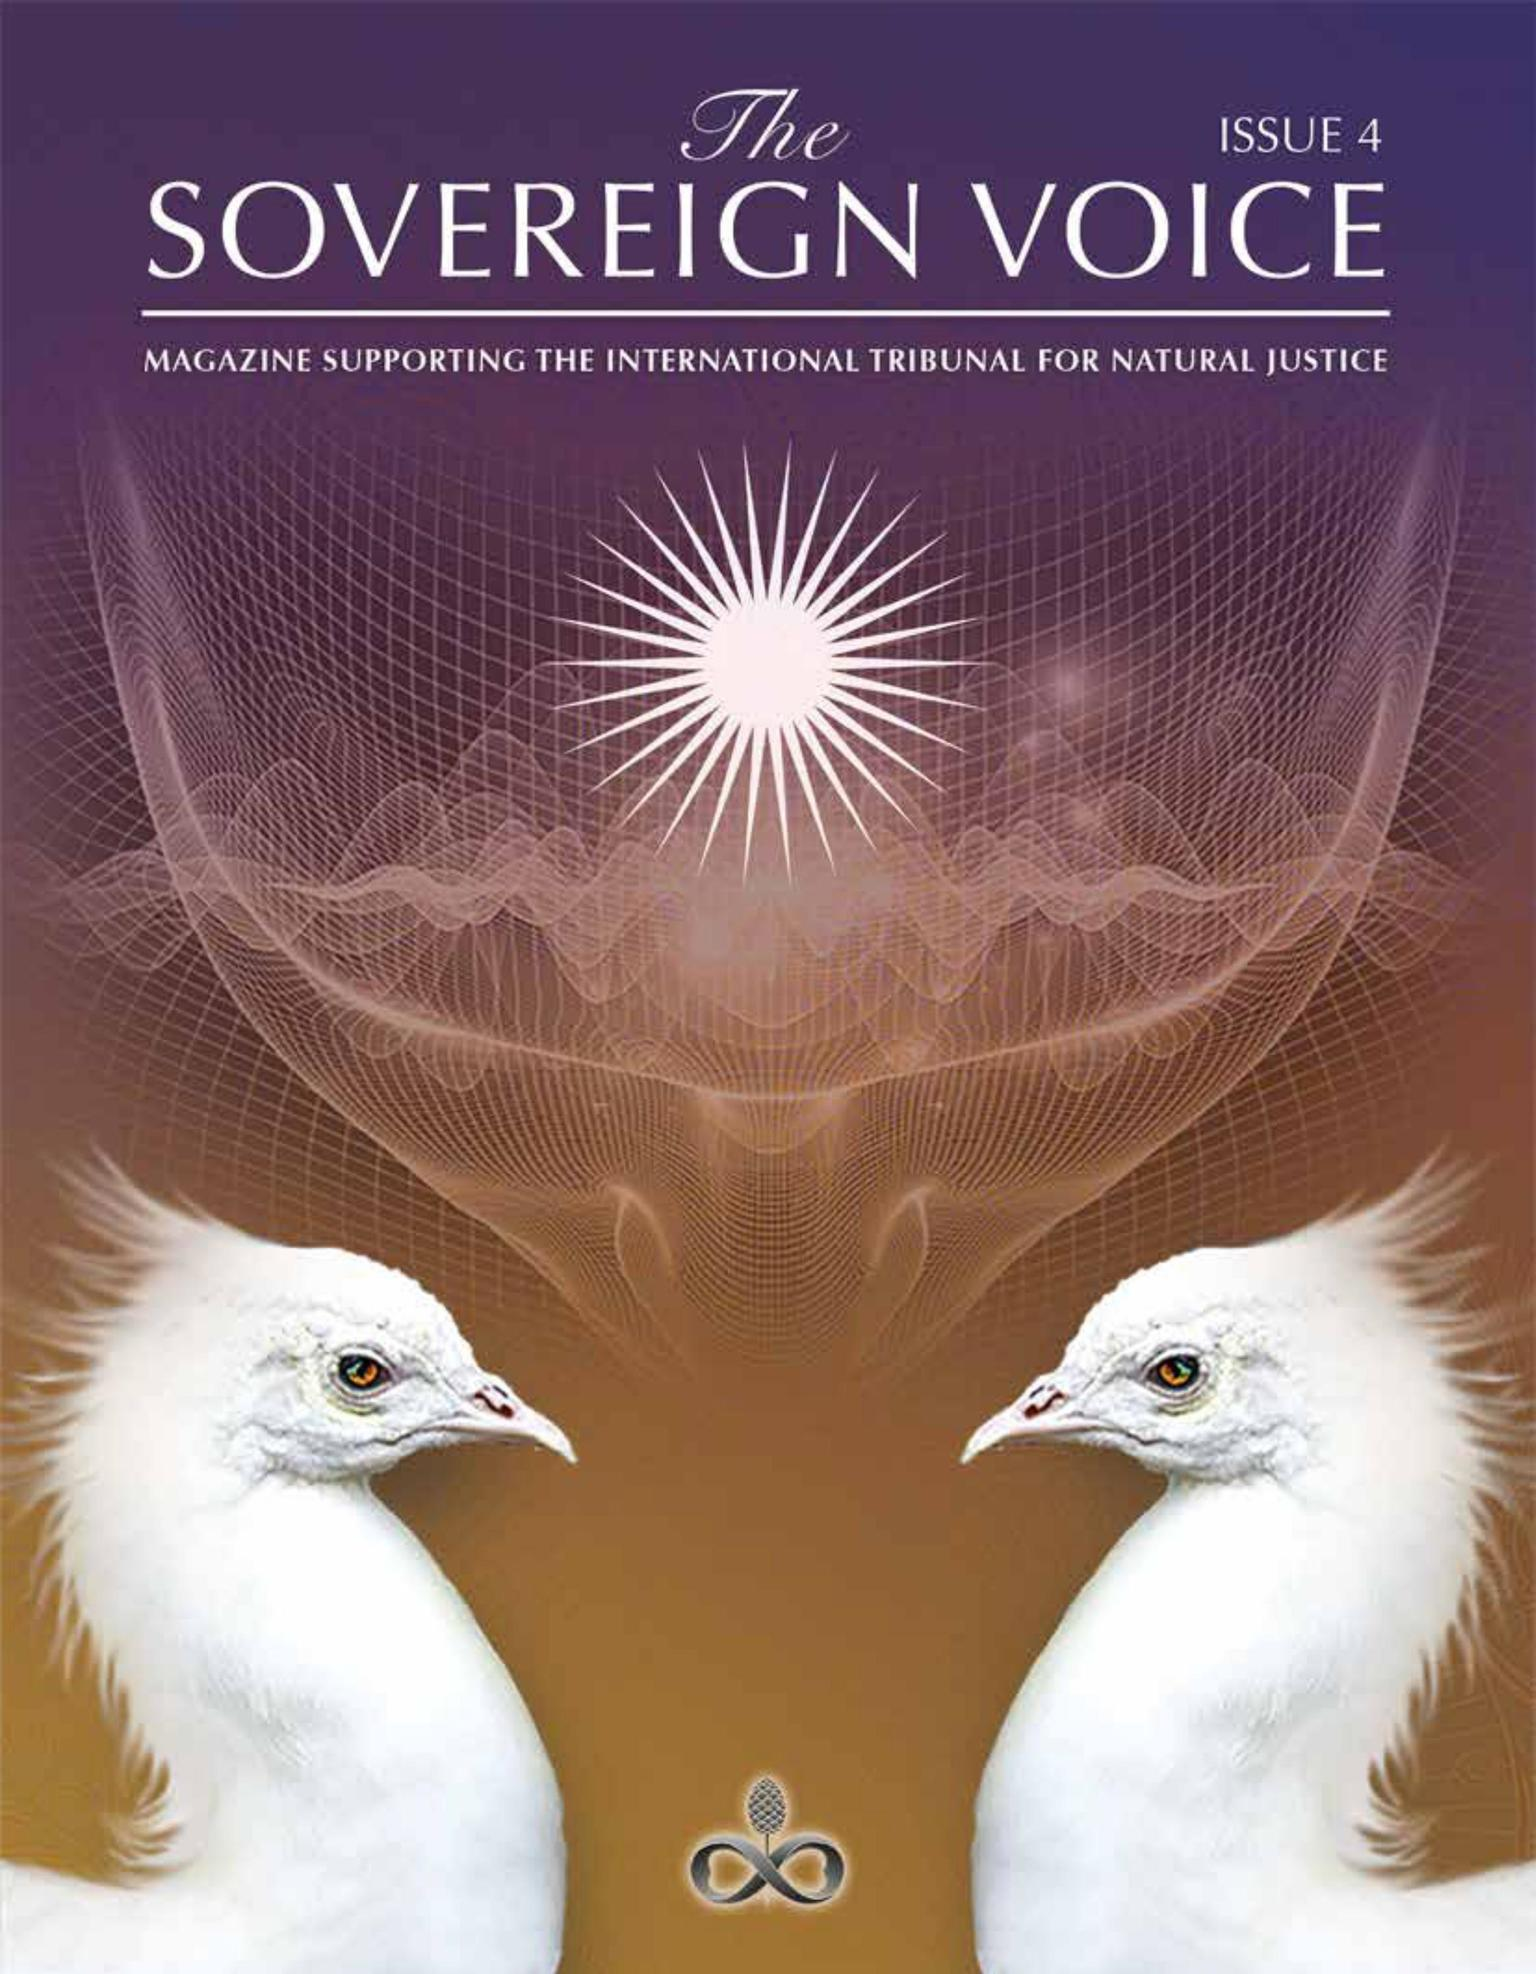 A closer look at the symbolism of the ITNJ (International Tribunal of Natural Justice) Sovereign_Voice_Magazine